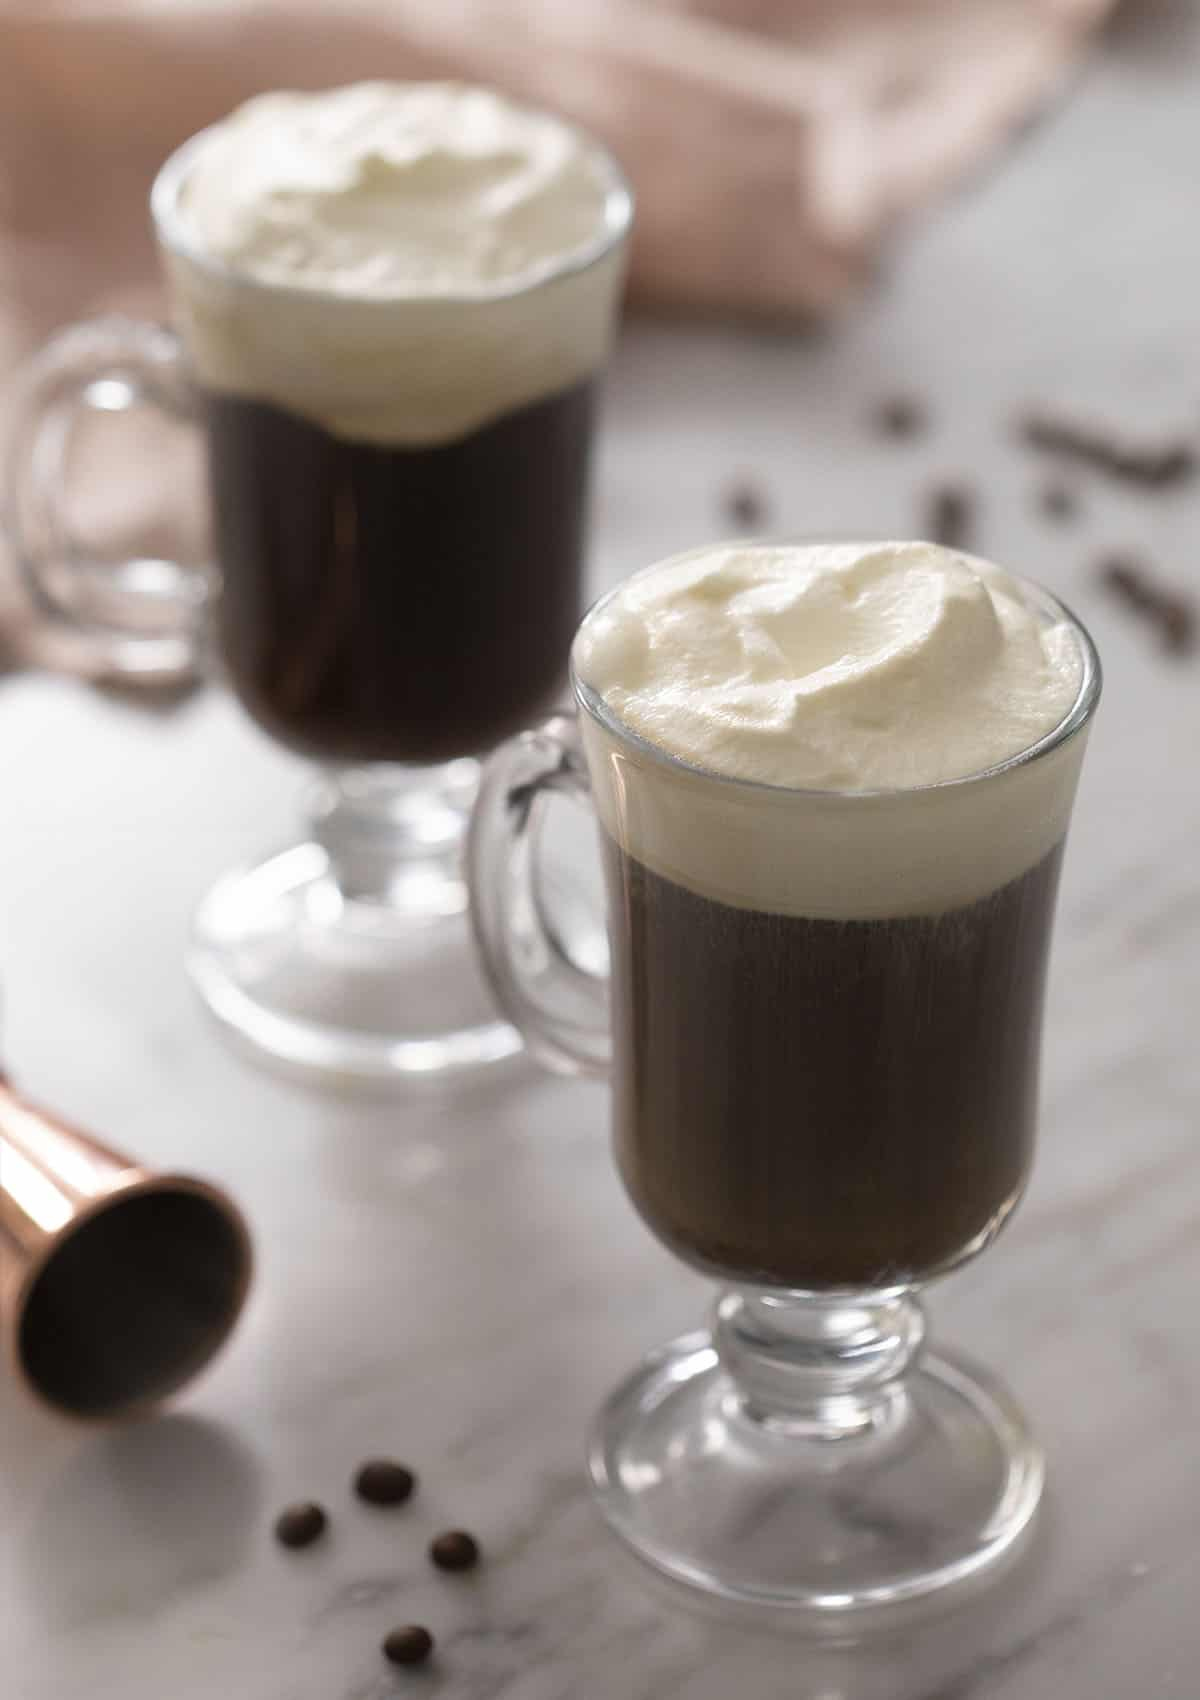 Two Irish coffees topped with whipped cream